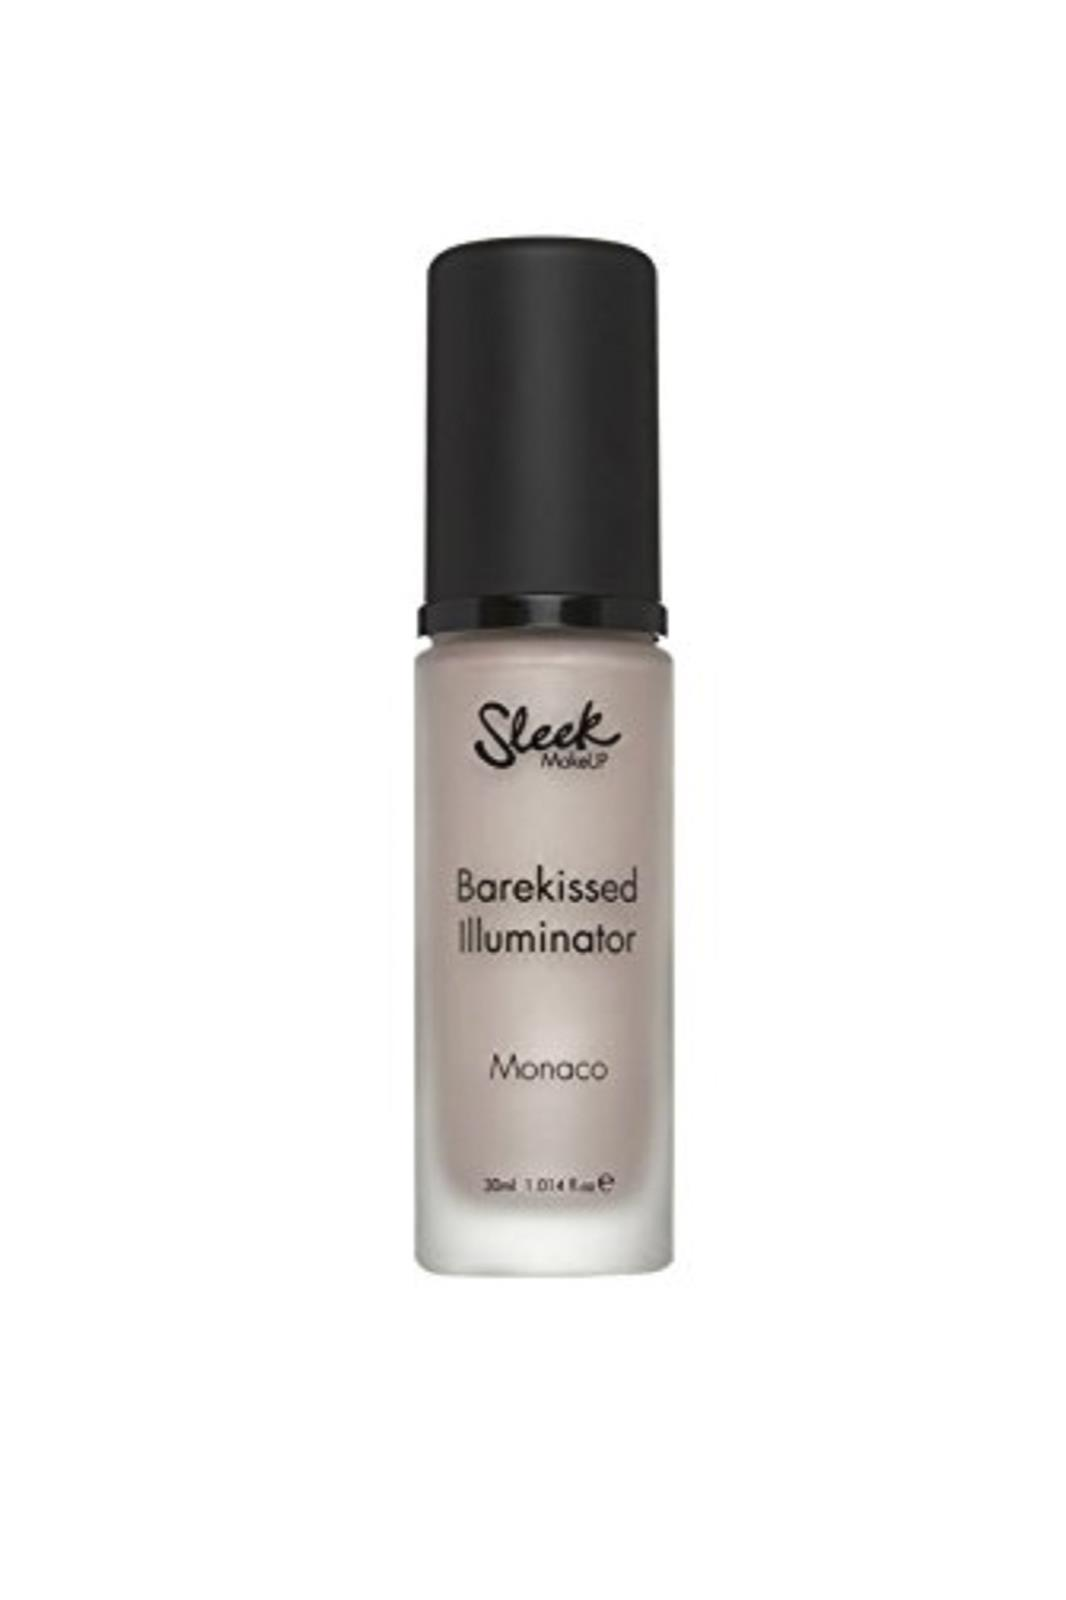 Barekissed iluminator Sleek, 5,49€